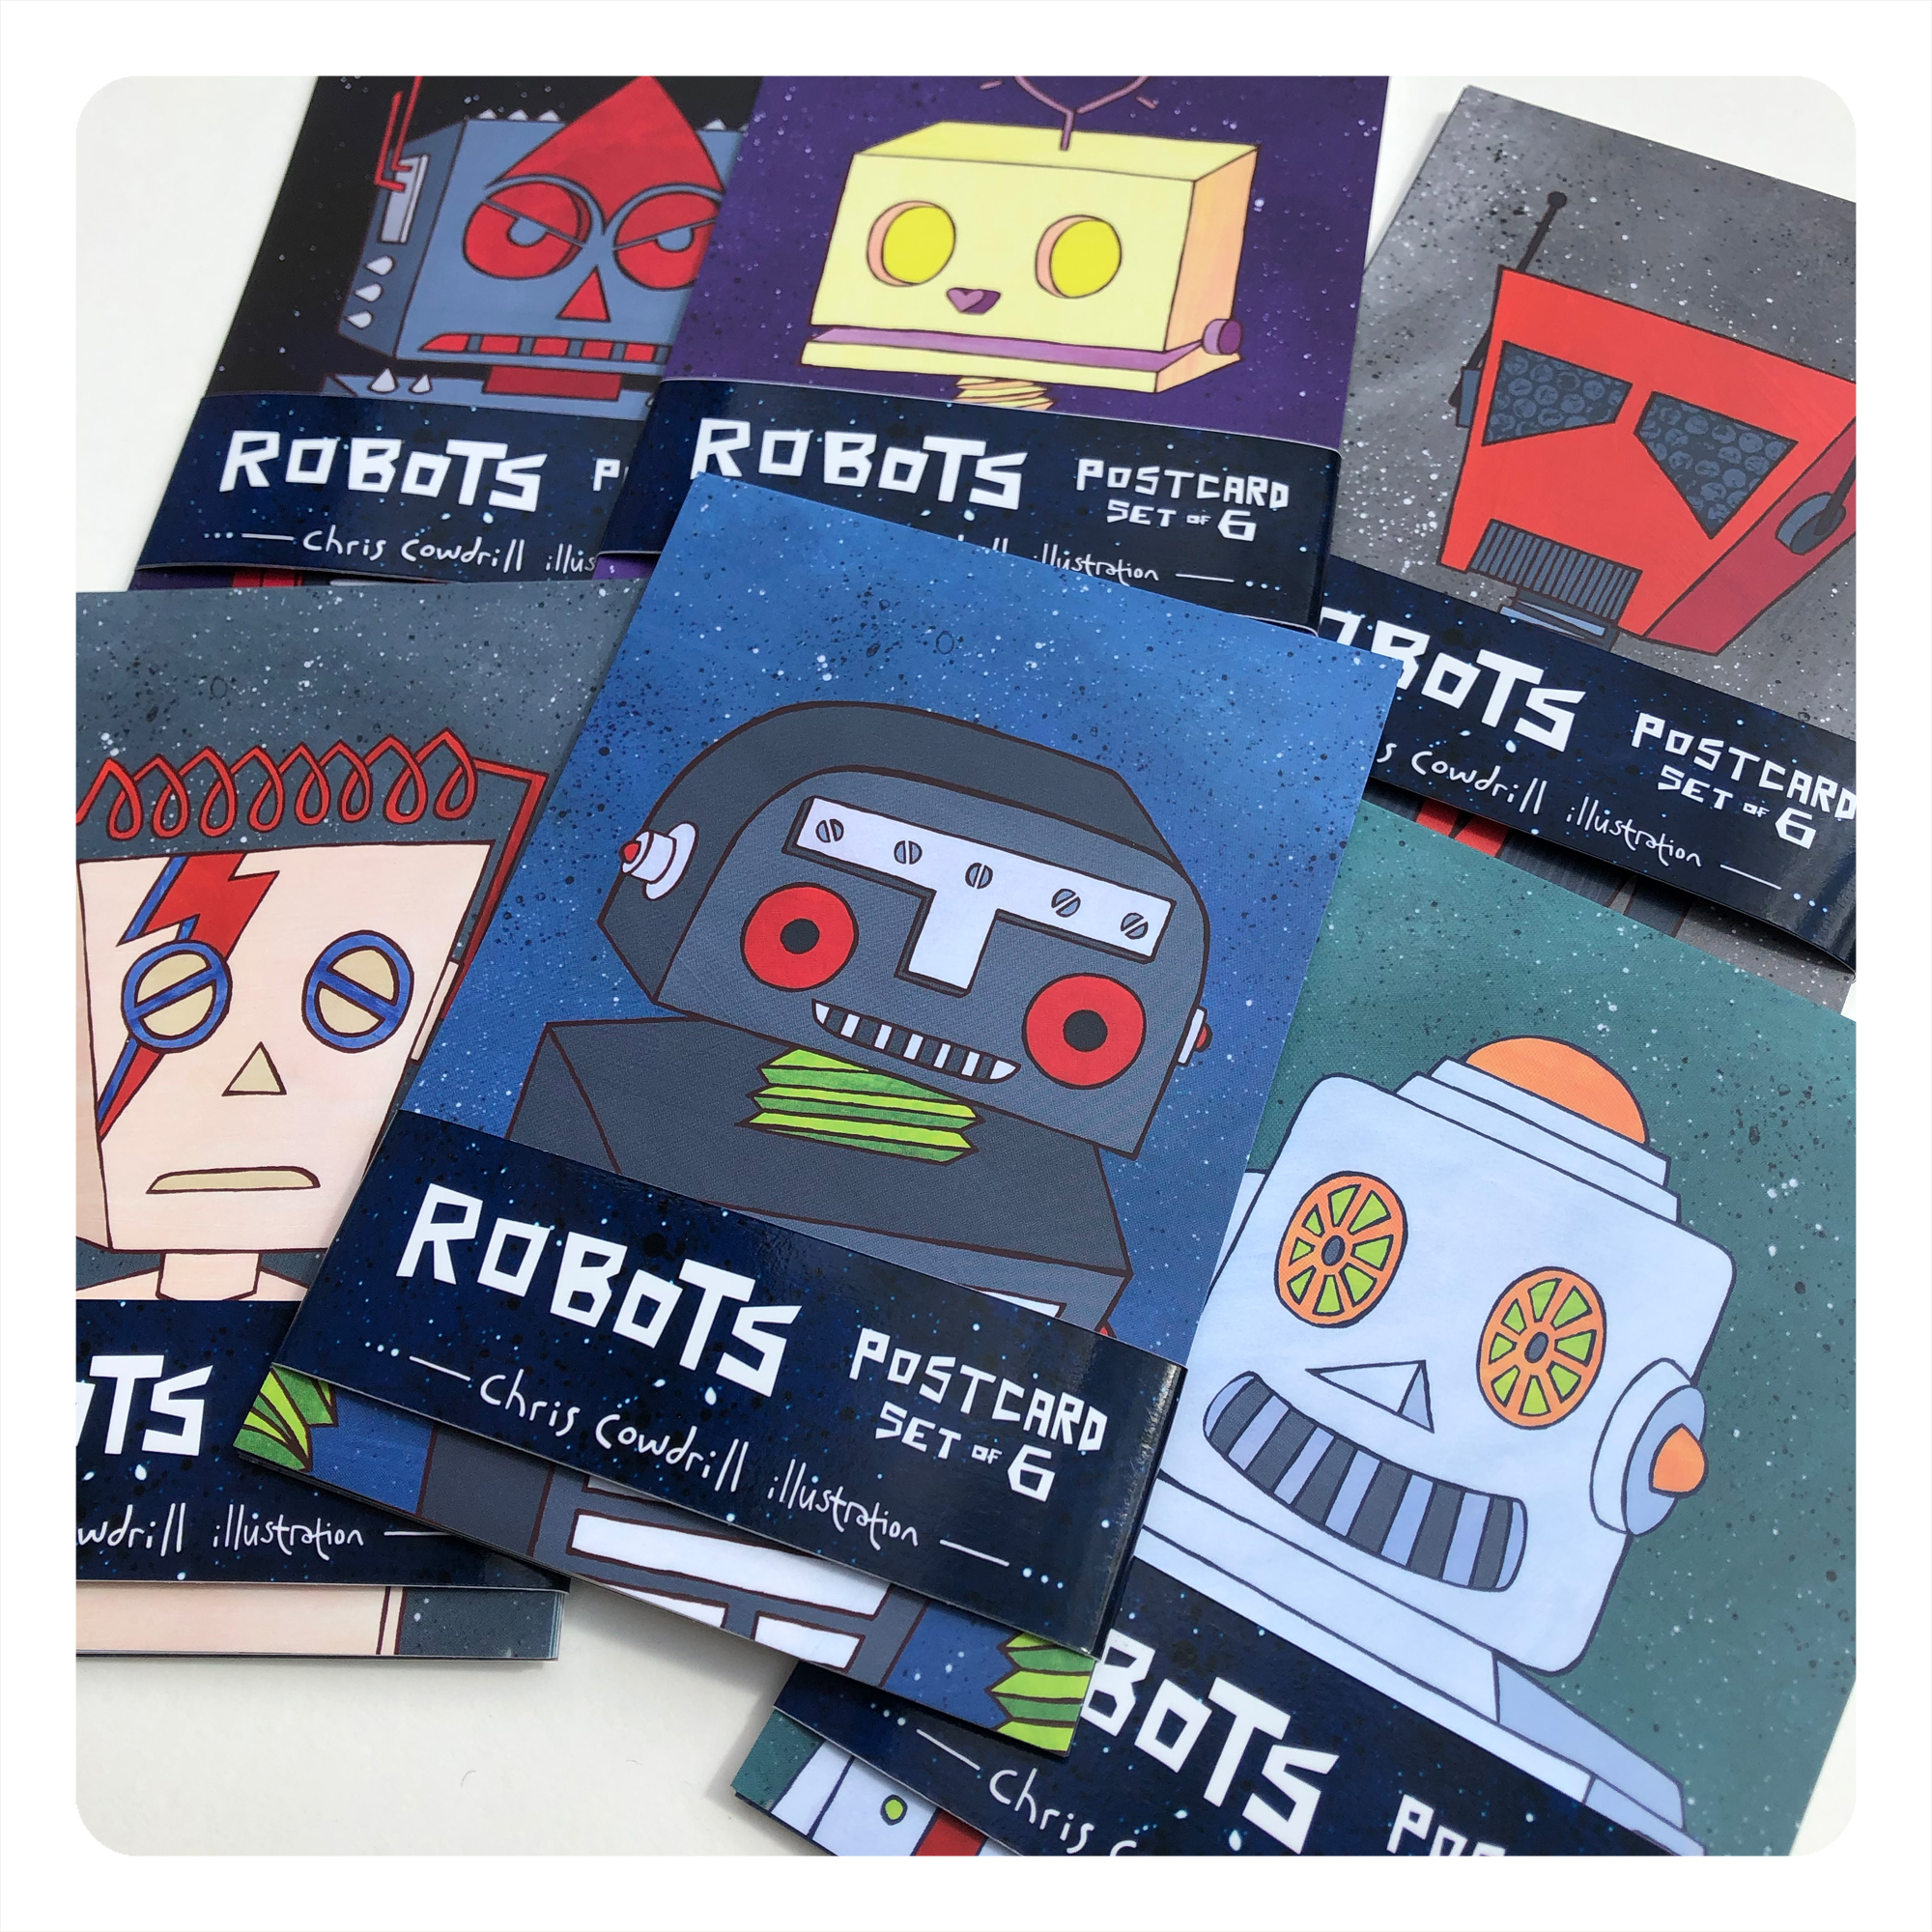 retro robot set of 6 postcards by chris cowdrill